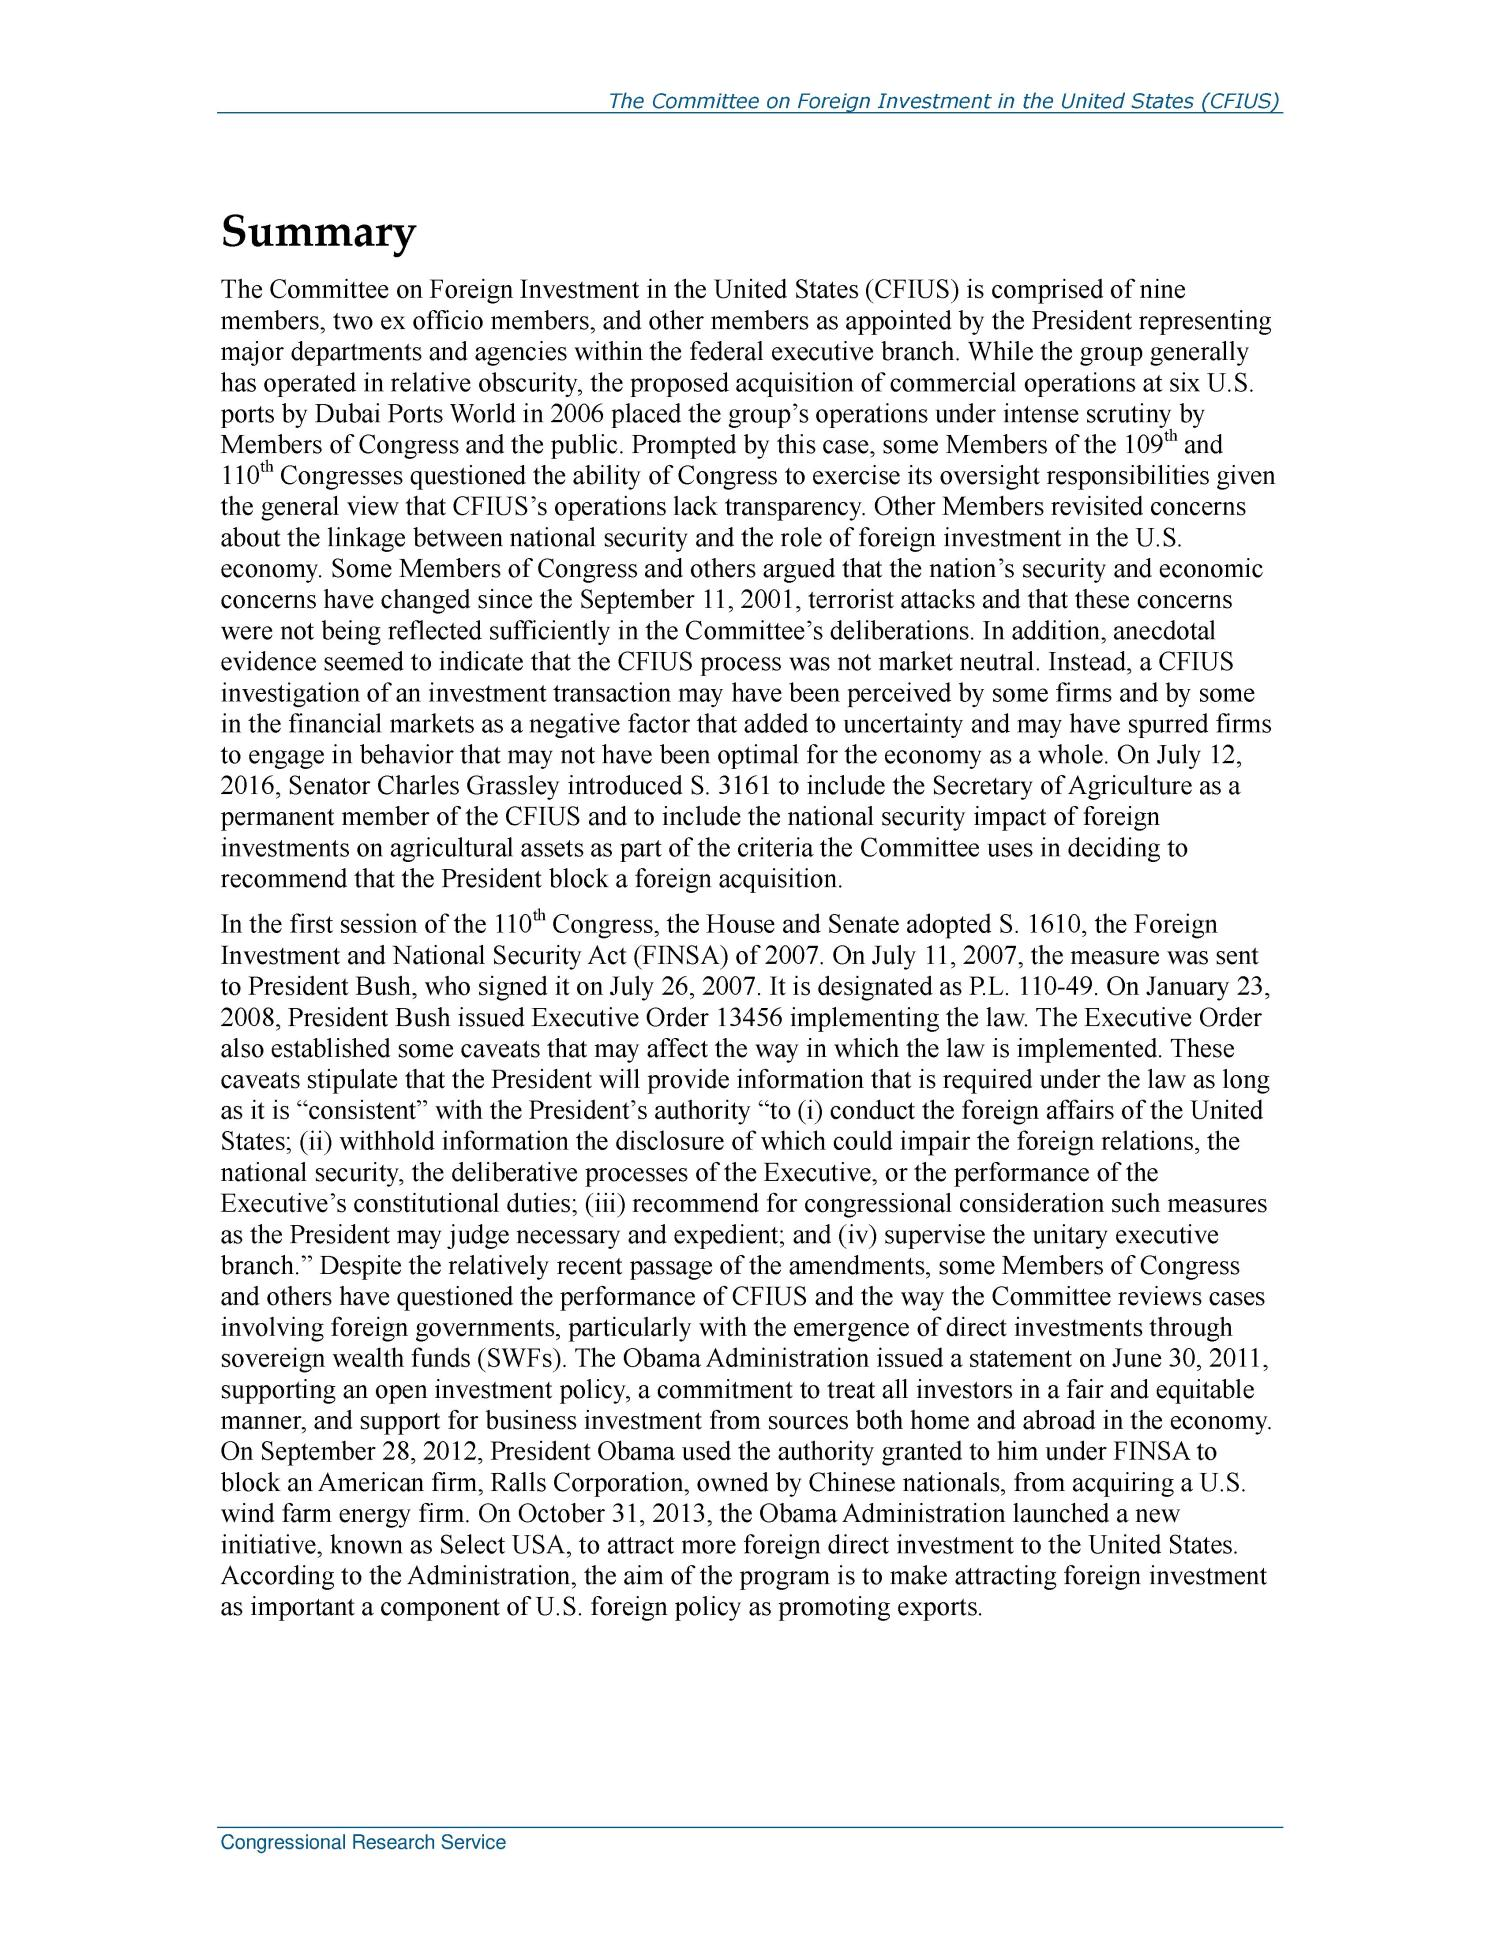 The Committee on Foreign Investment in the United States (CFIUS)                                                                                                      [Sequence #]: 2 of 38